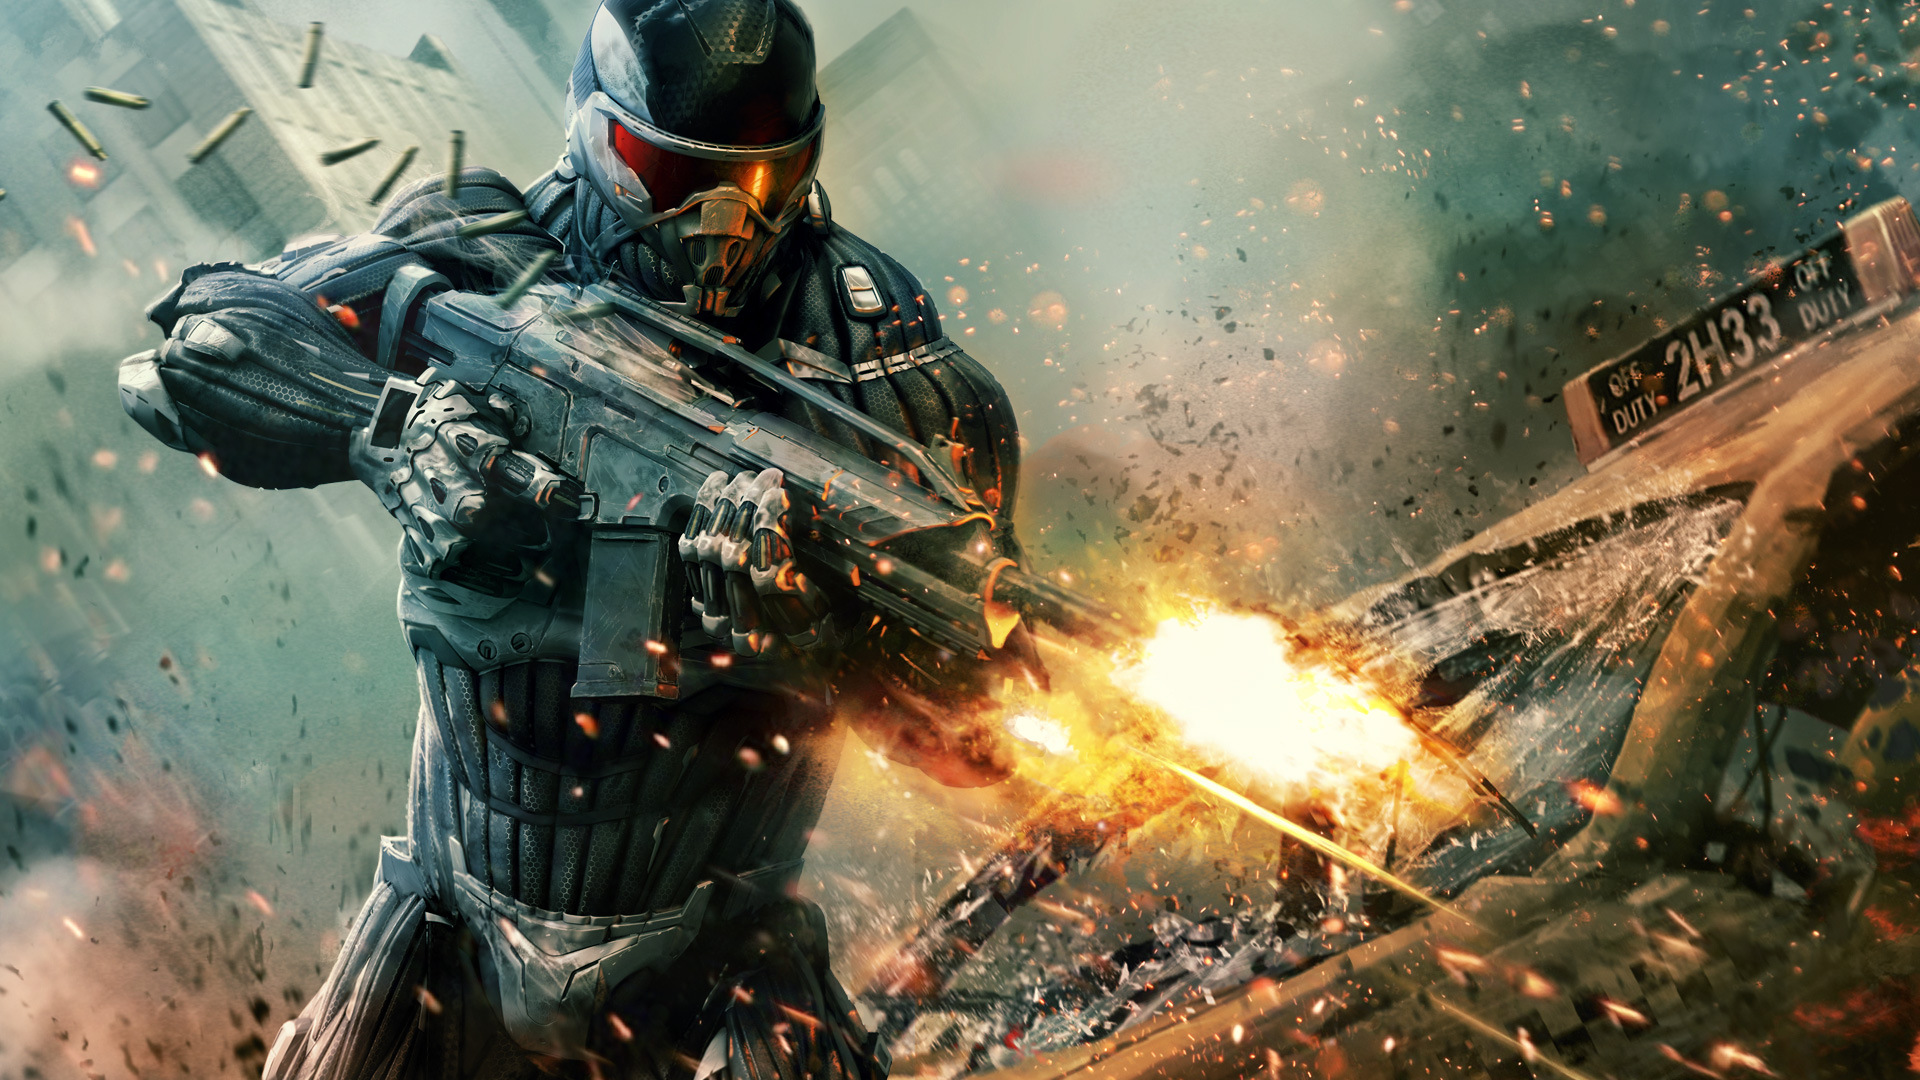 Crysis 2 Wallpaper submited images 1920x1080